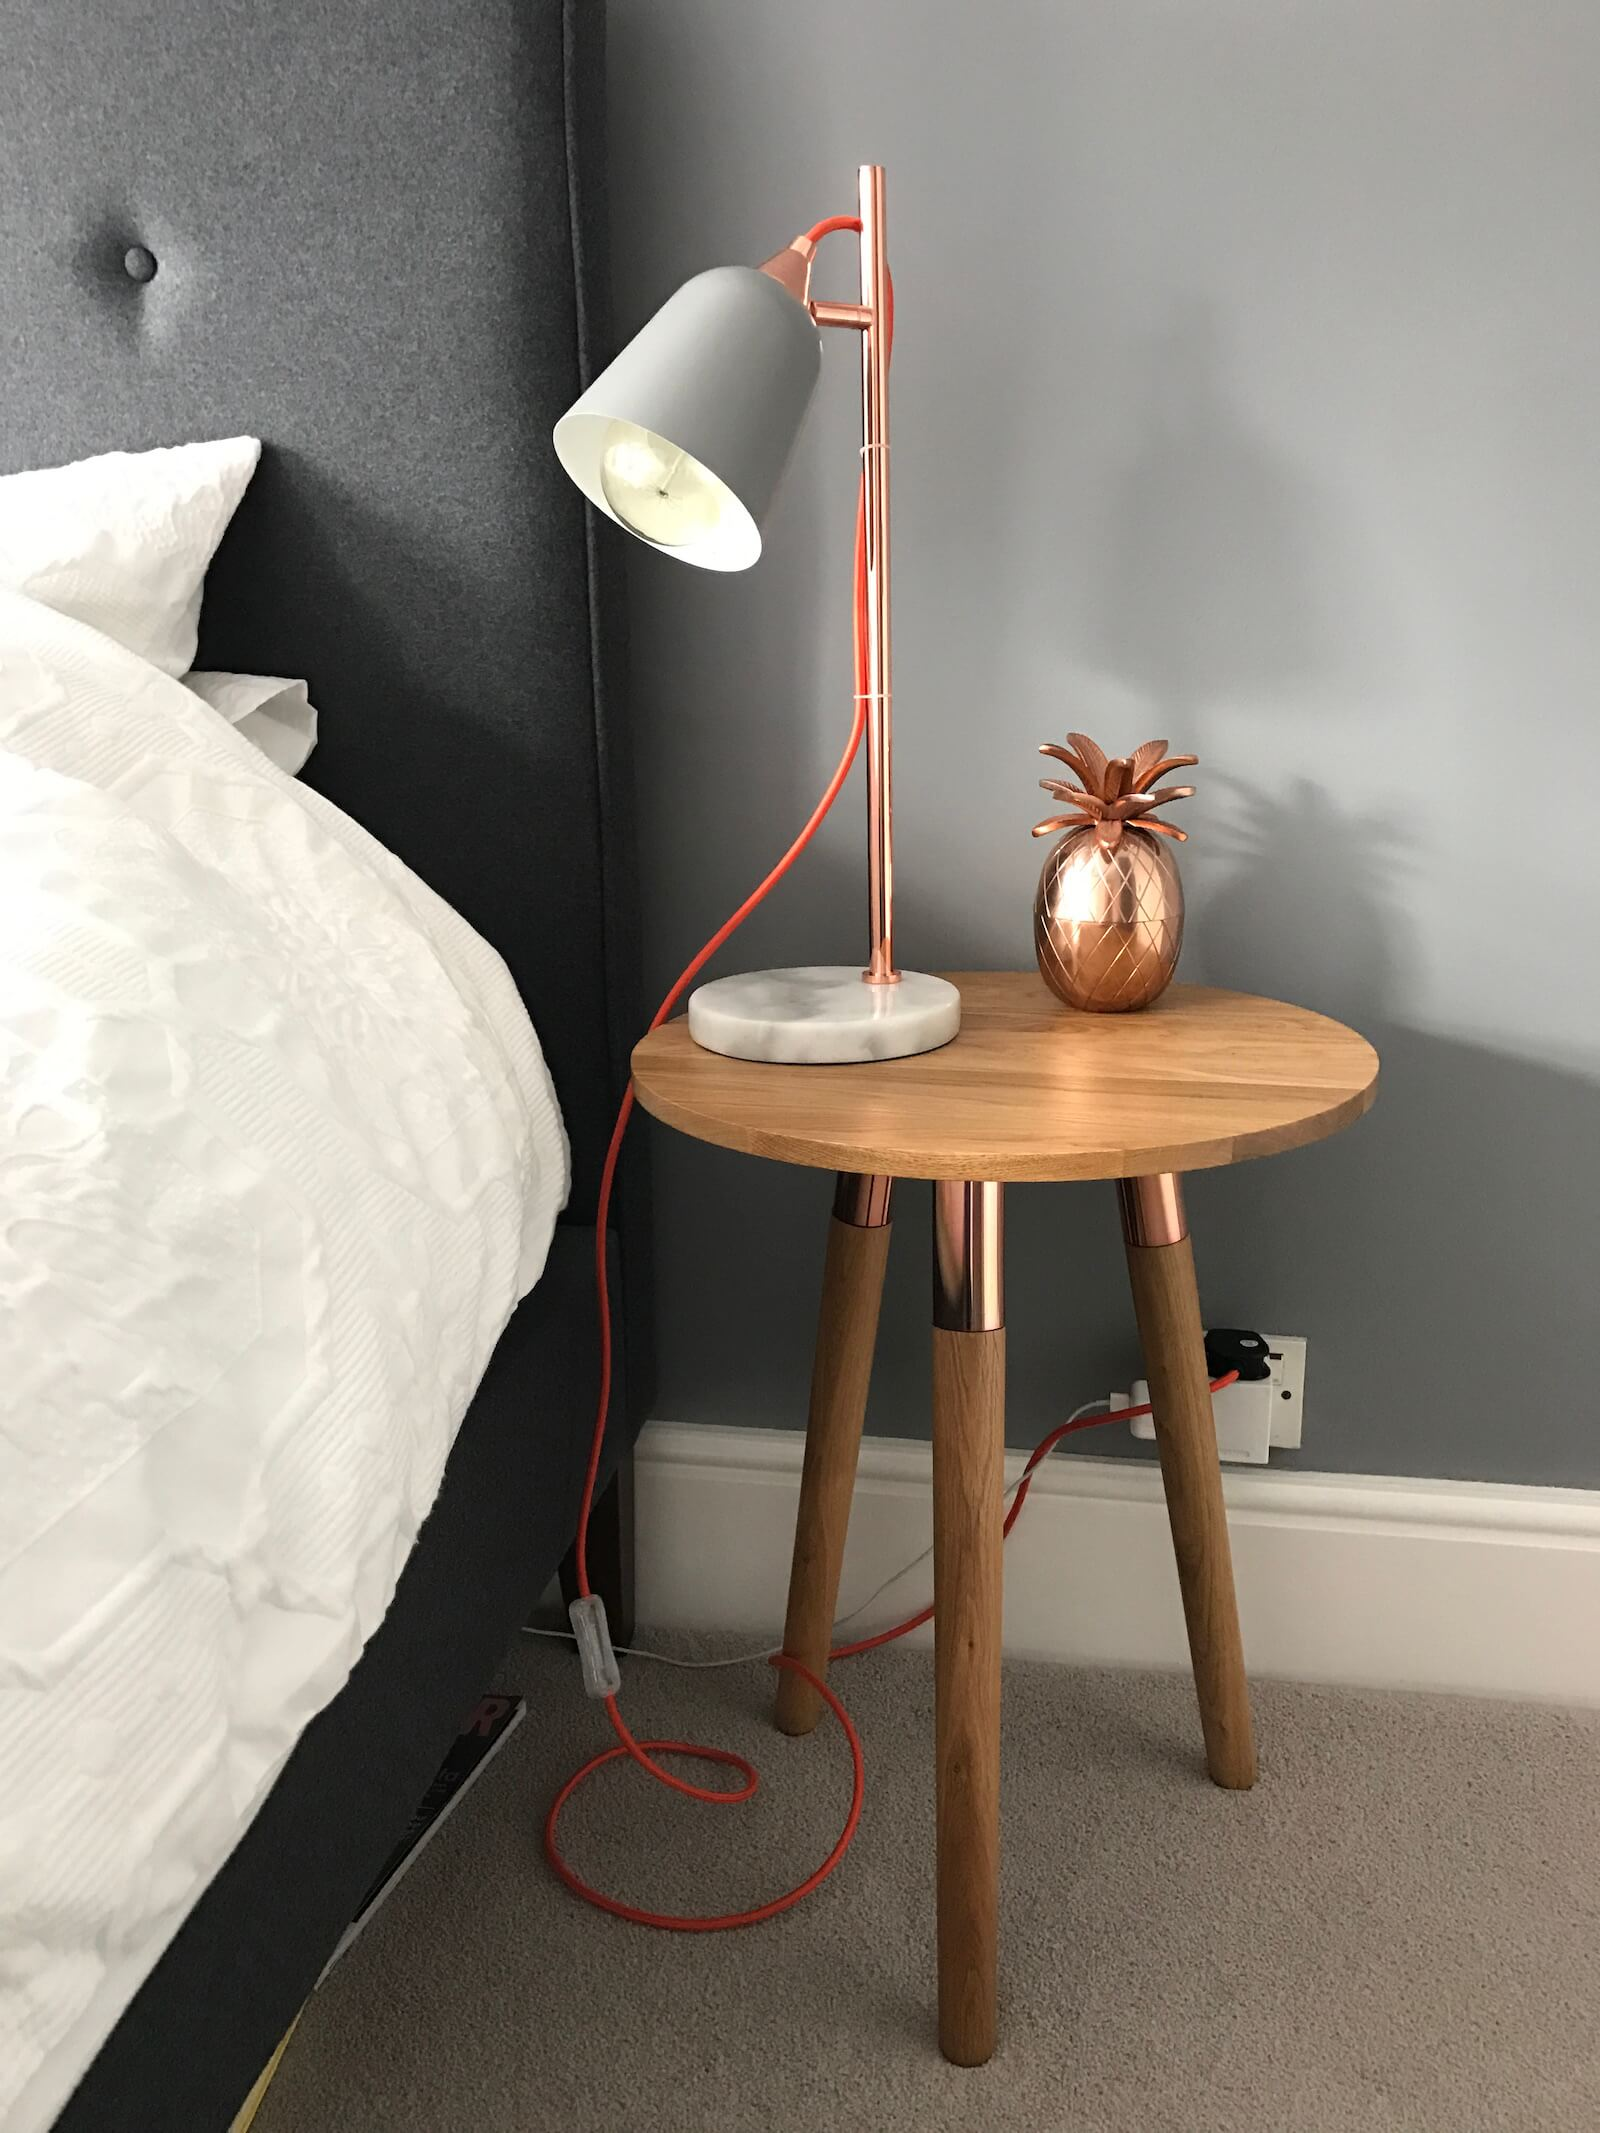 Love this Scandinavian space? It's a Victorian Terrace in the UK - come and see the whole home tour on www.lovetohome.co.uk